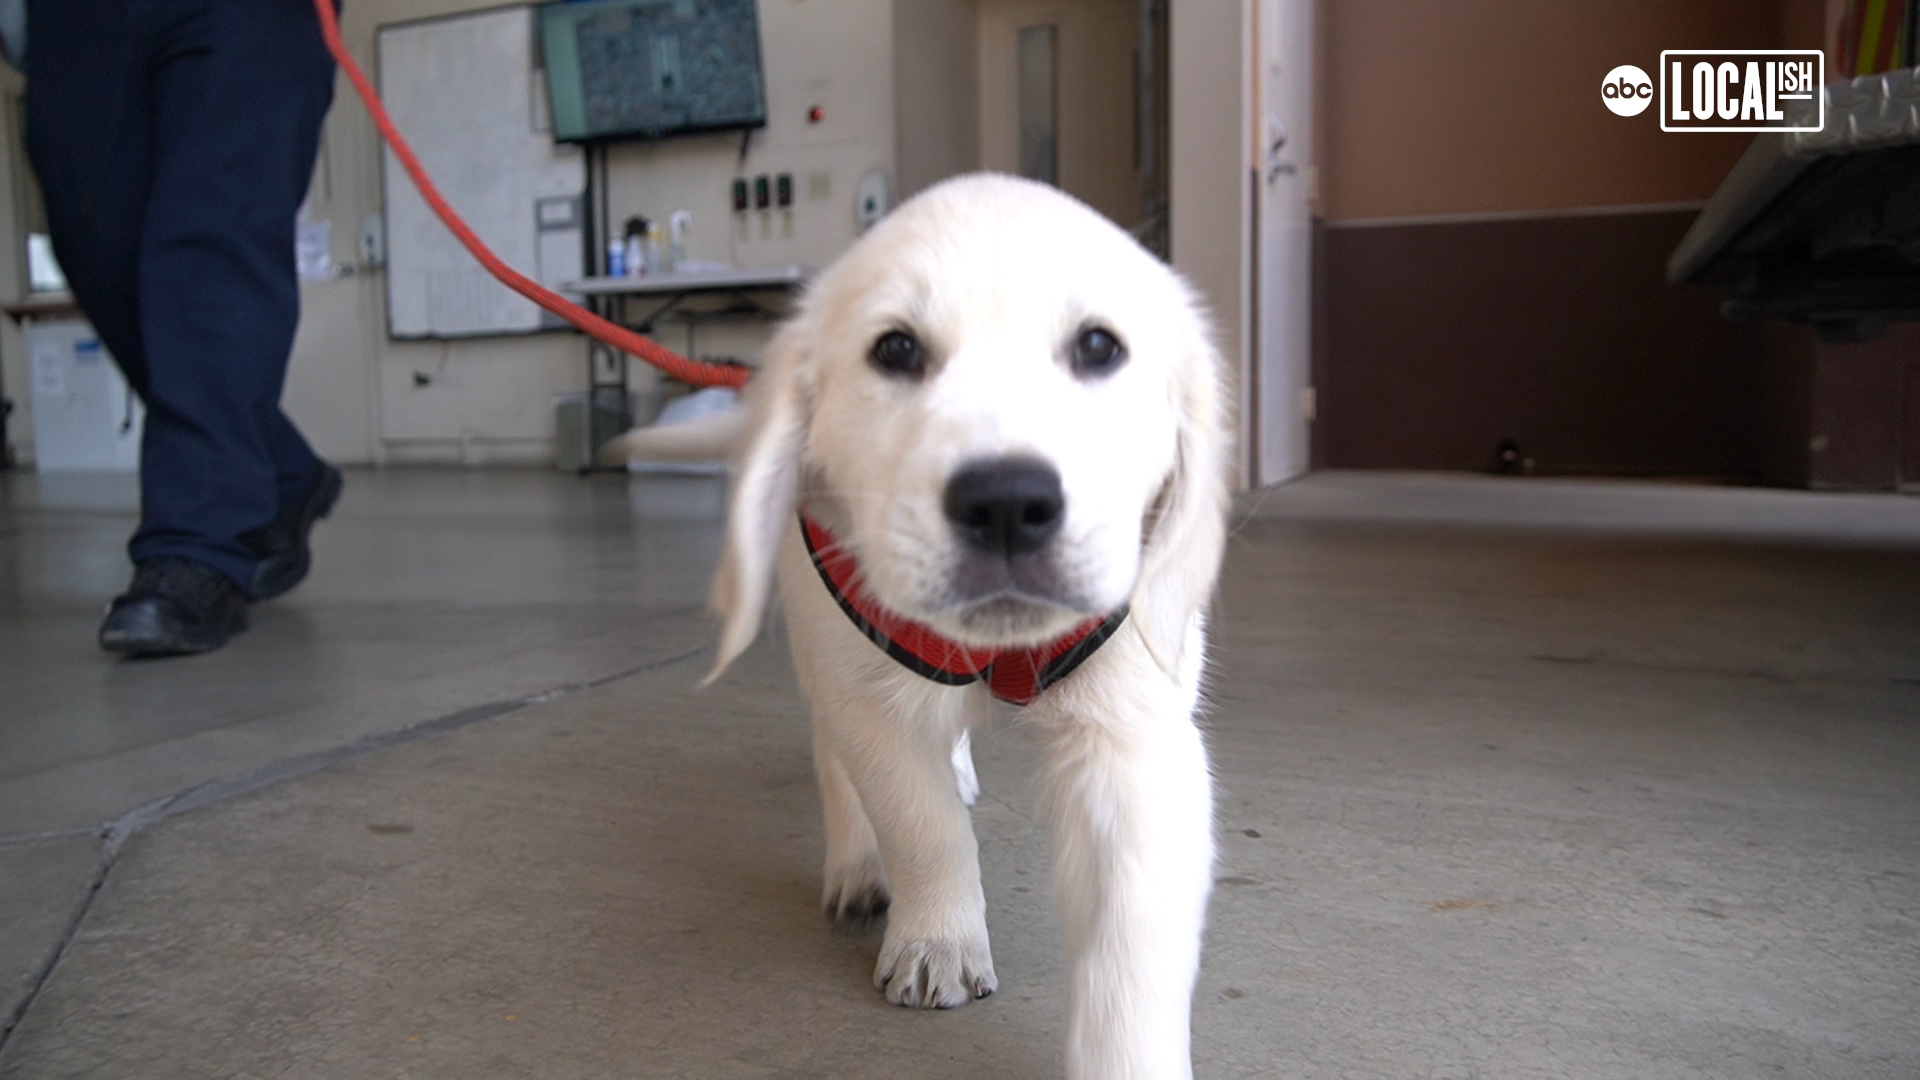 Puppies help firefighters cope with stress